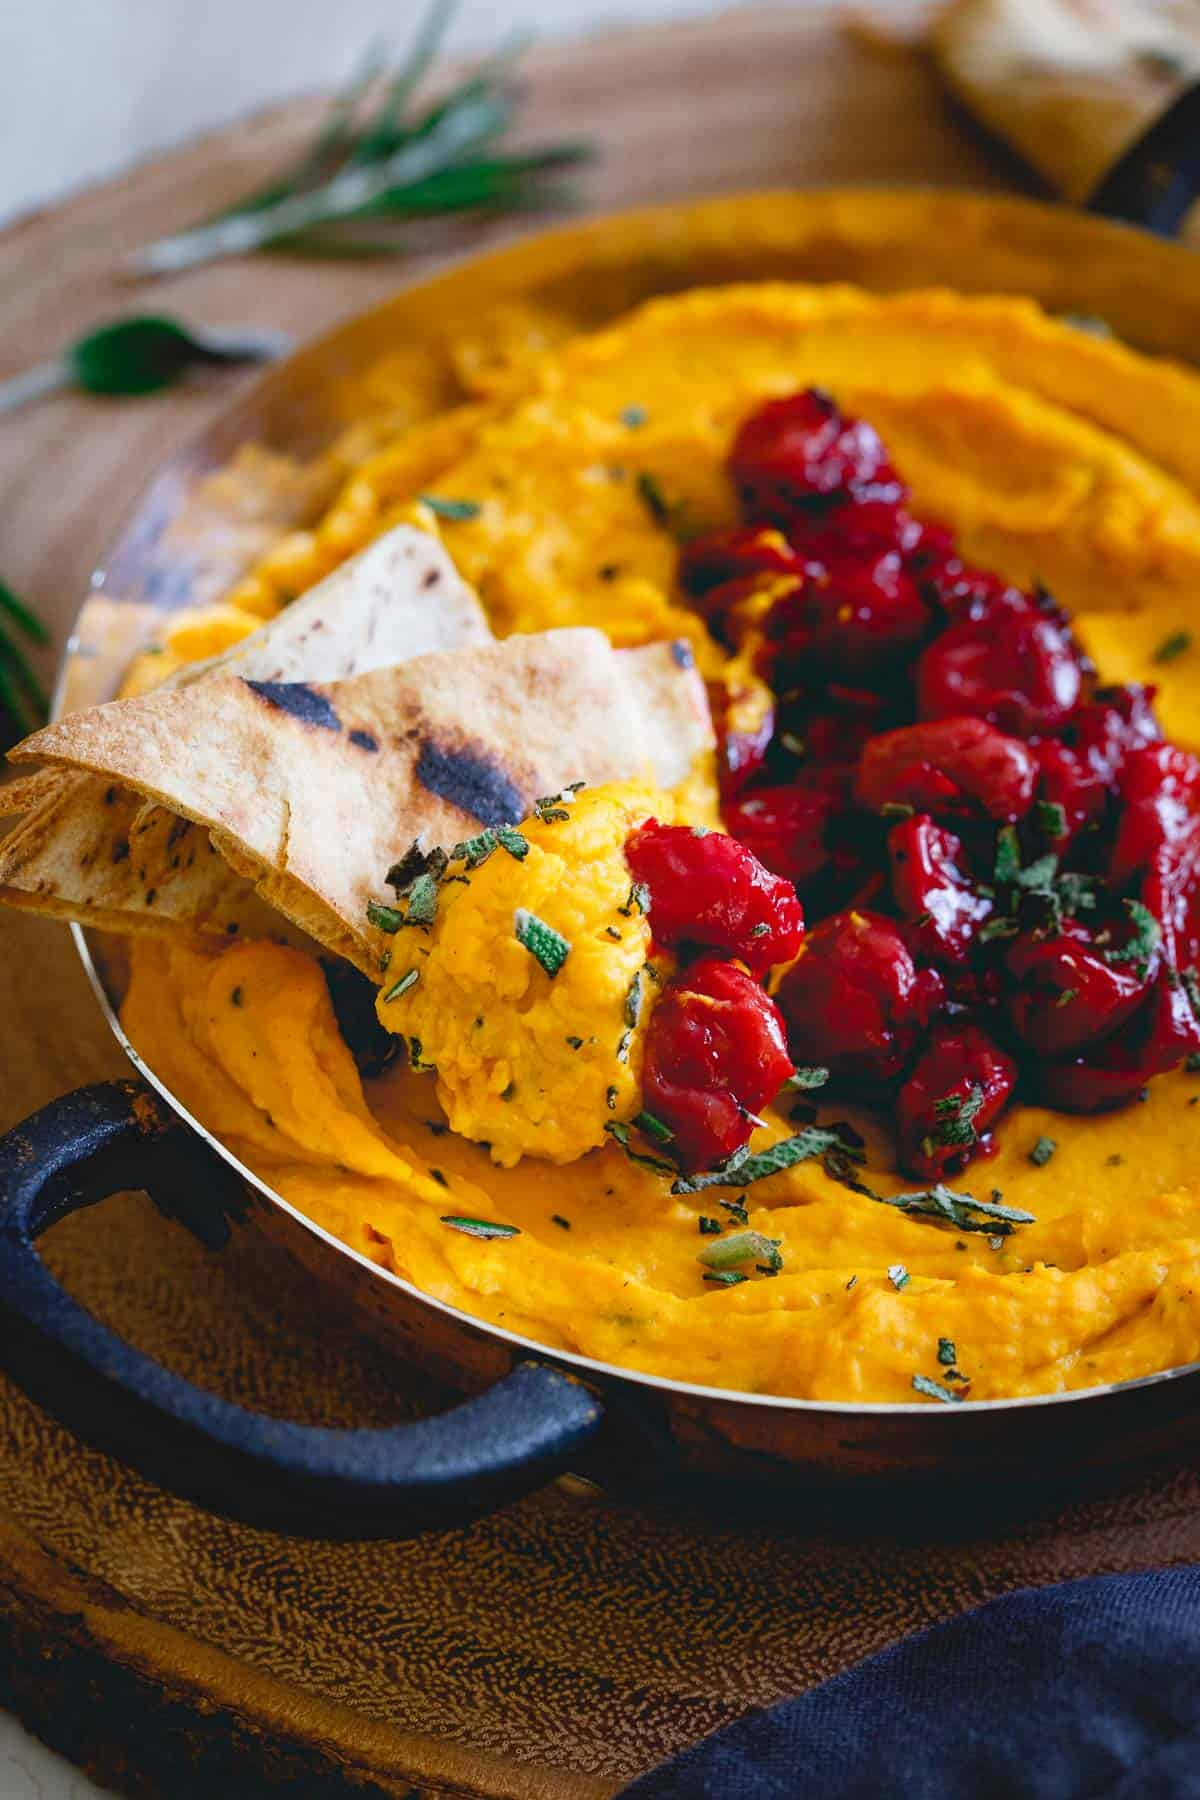 Creamy butternut squash dip is topped with a simple tart cherry compote for a festive appetizer.